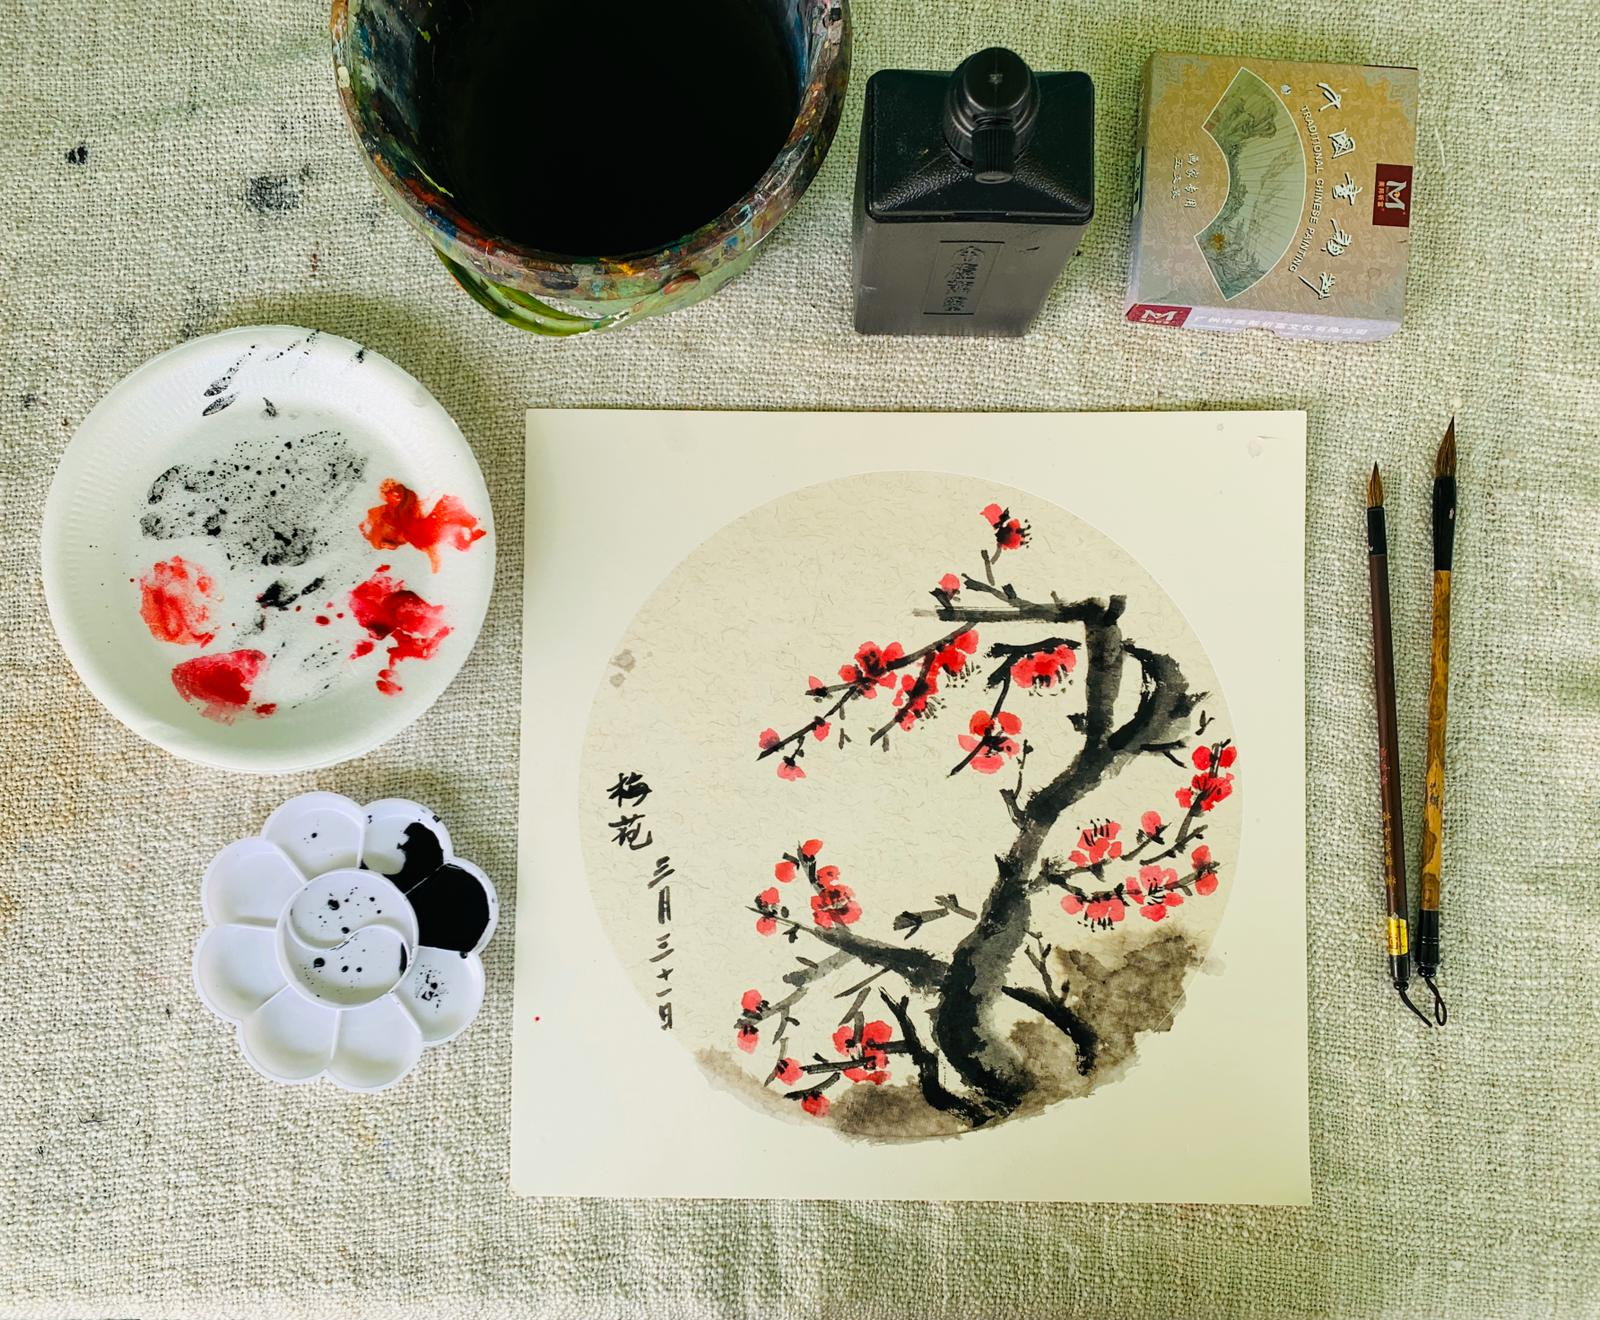 Chinese Ink Painting Art Course Visual Arts Centre Singapore